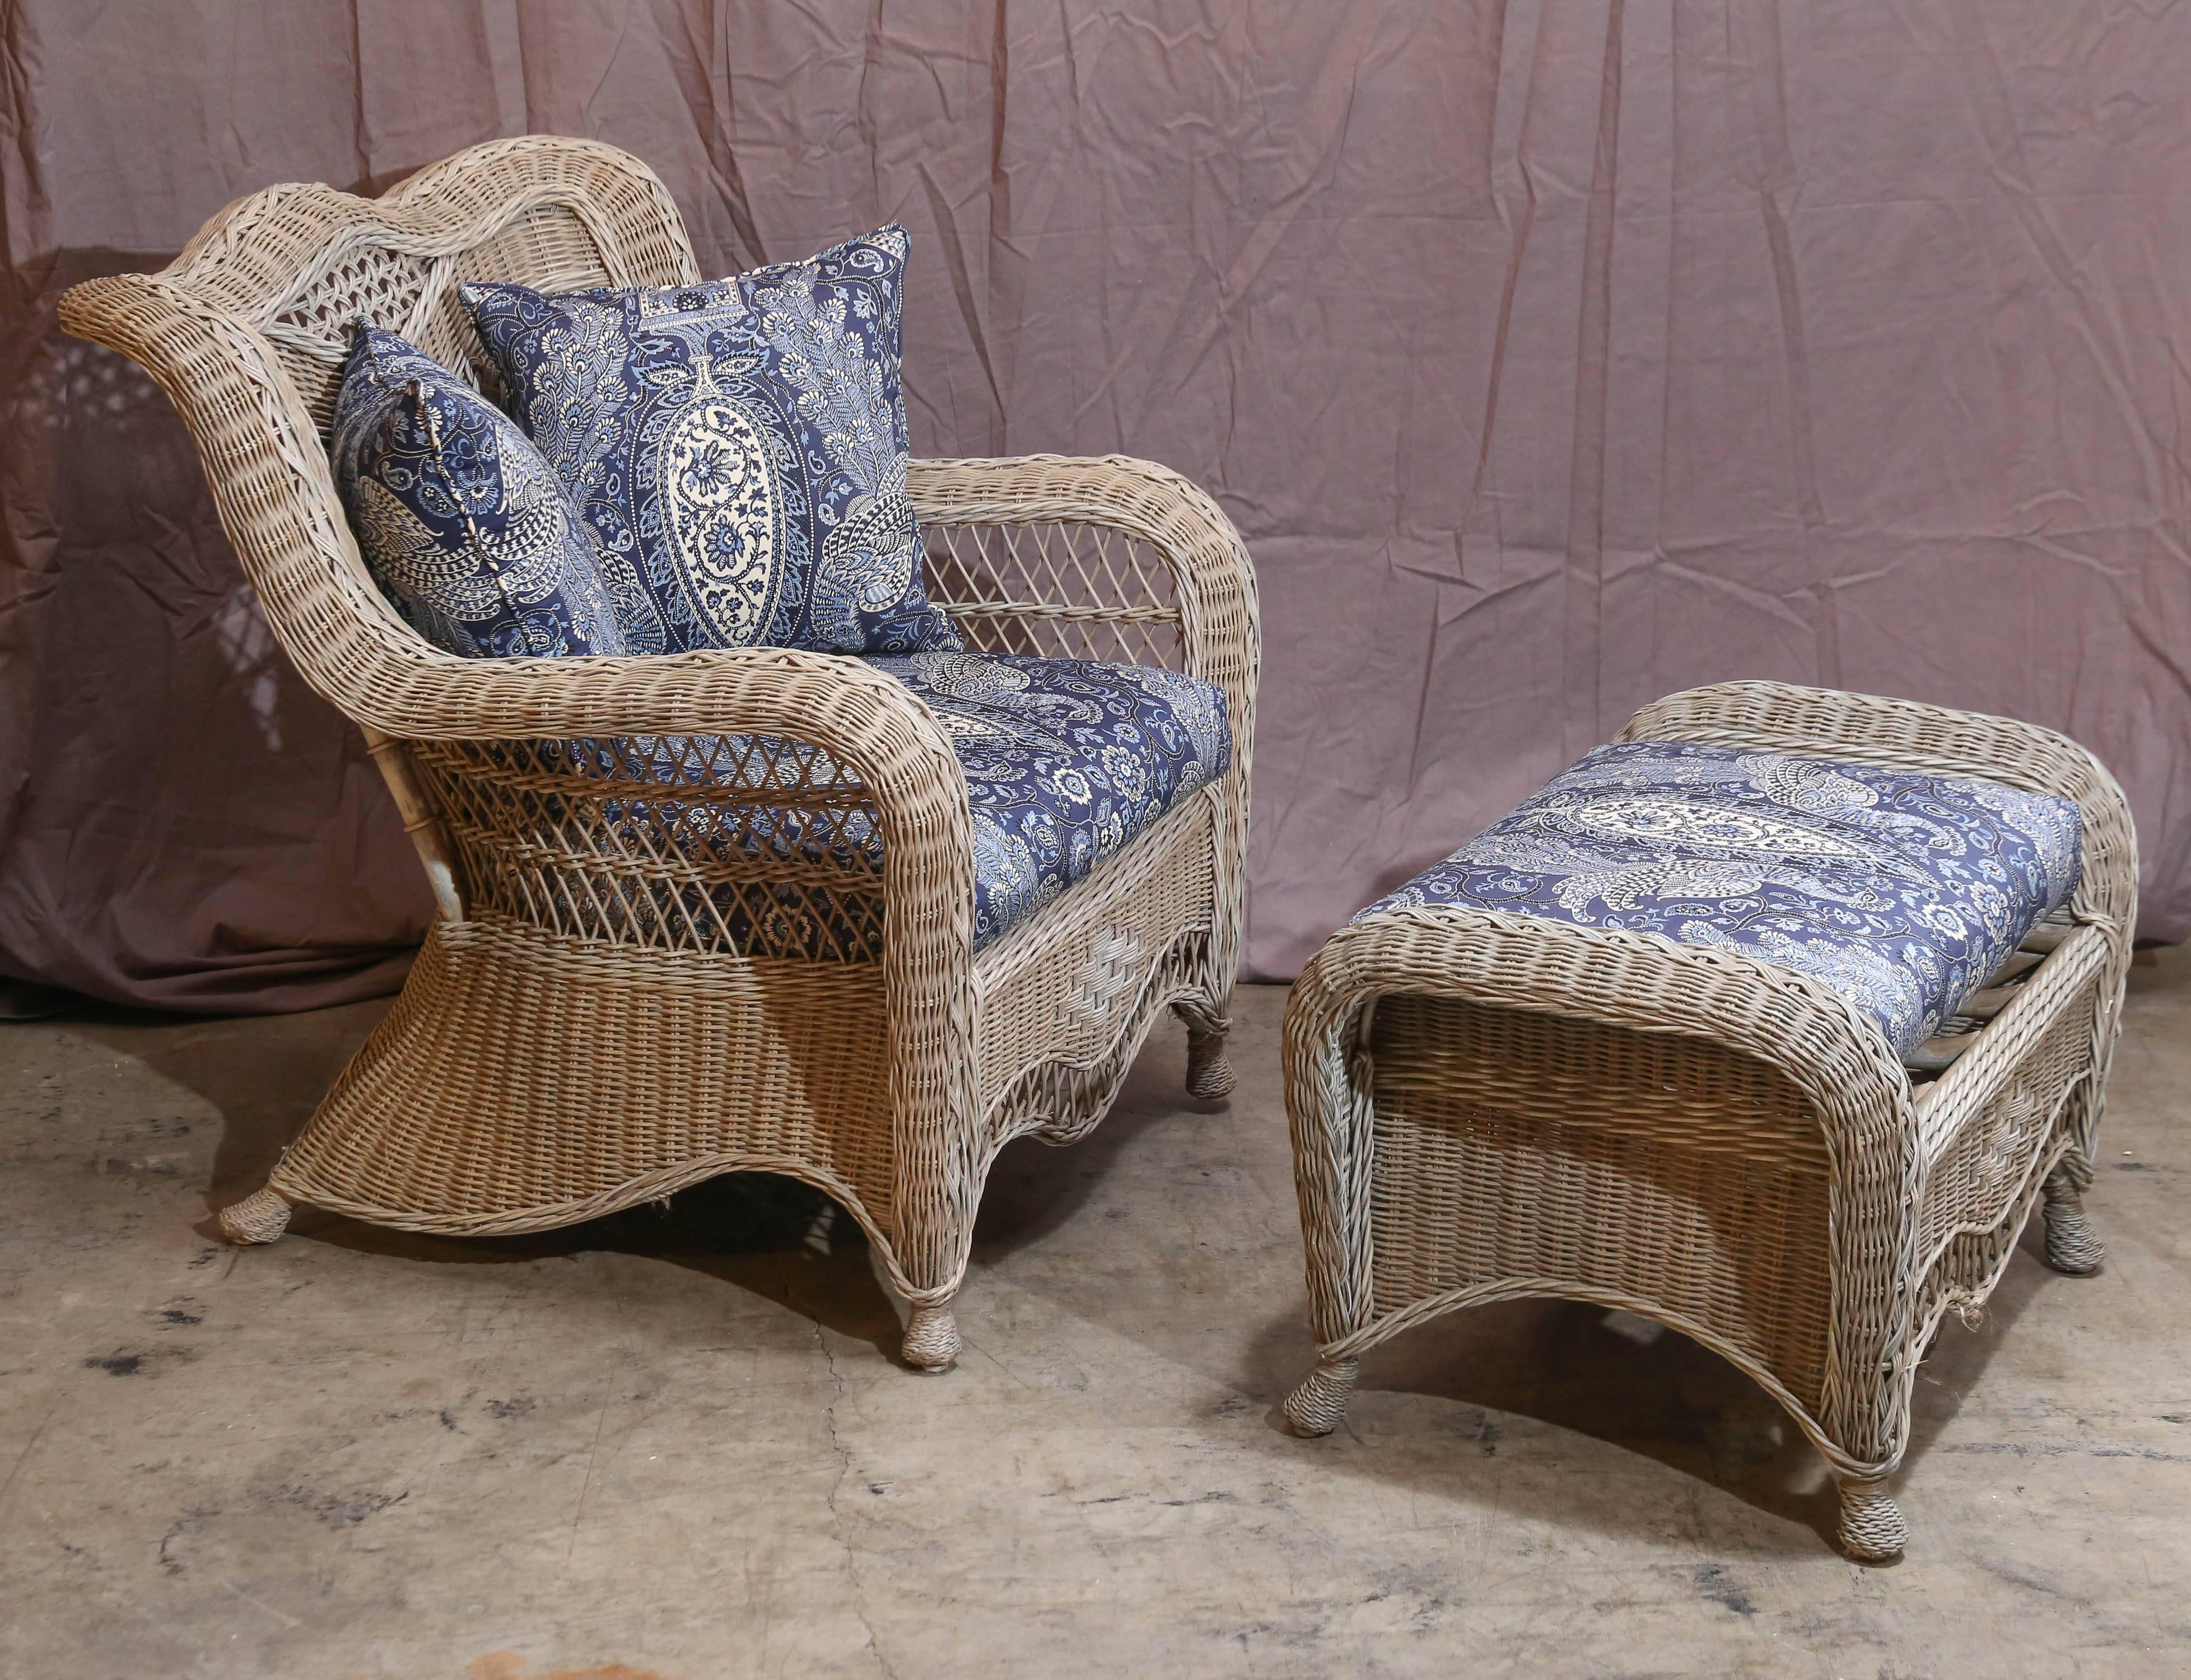 Victorian Style Wicker Chair And Ottoman Features Various Woven Patterns.  Items Were Originally Painted A